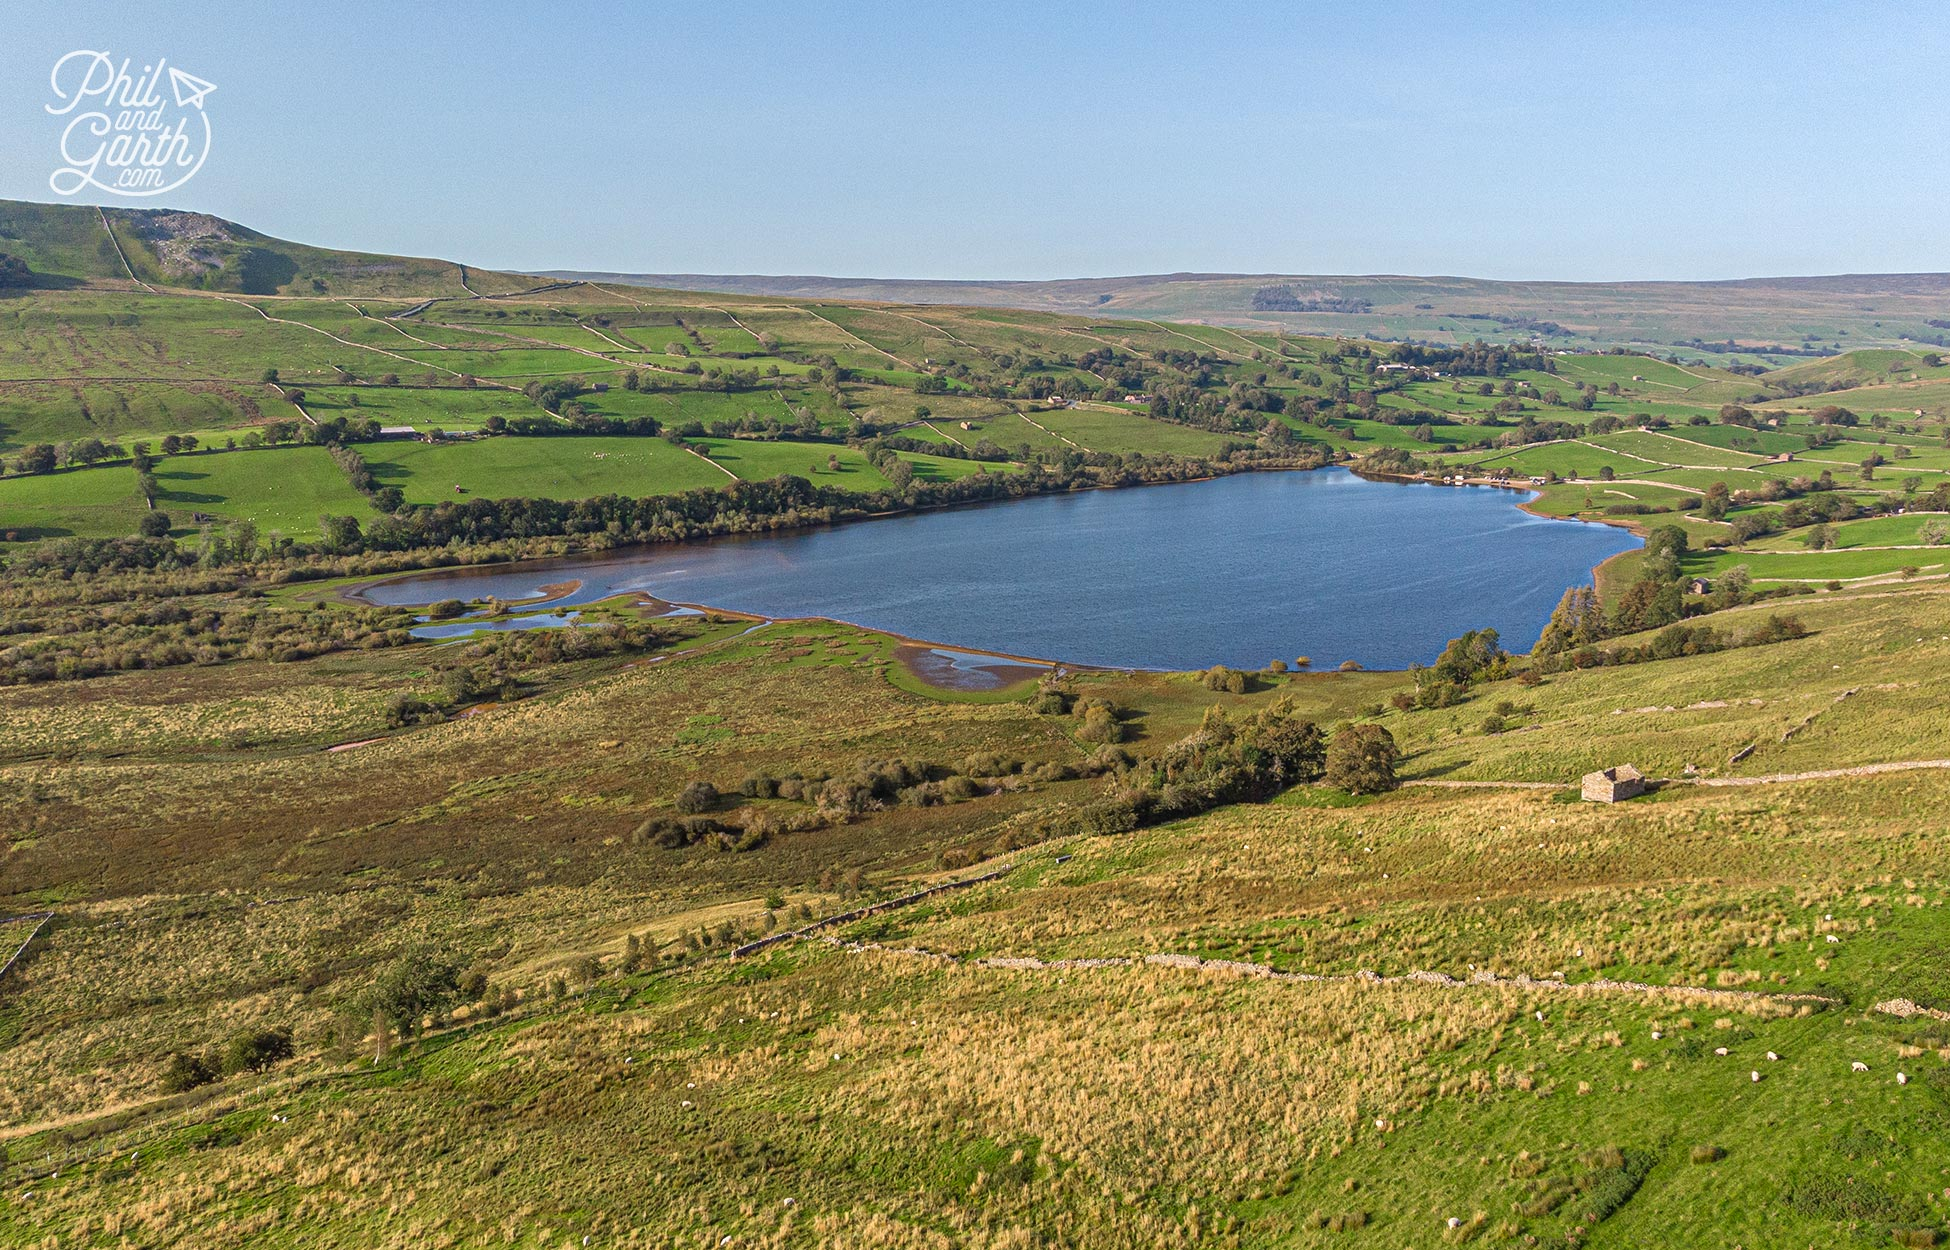 Lake Semerwater in the heart of Wensleydale, Yorkshire Dales National Park